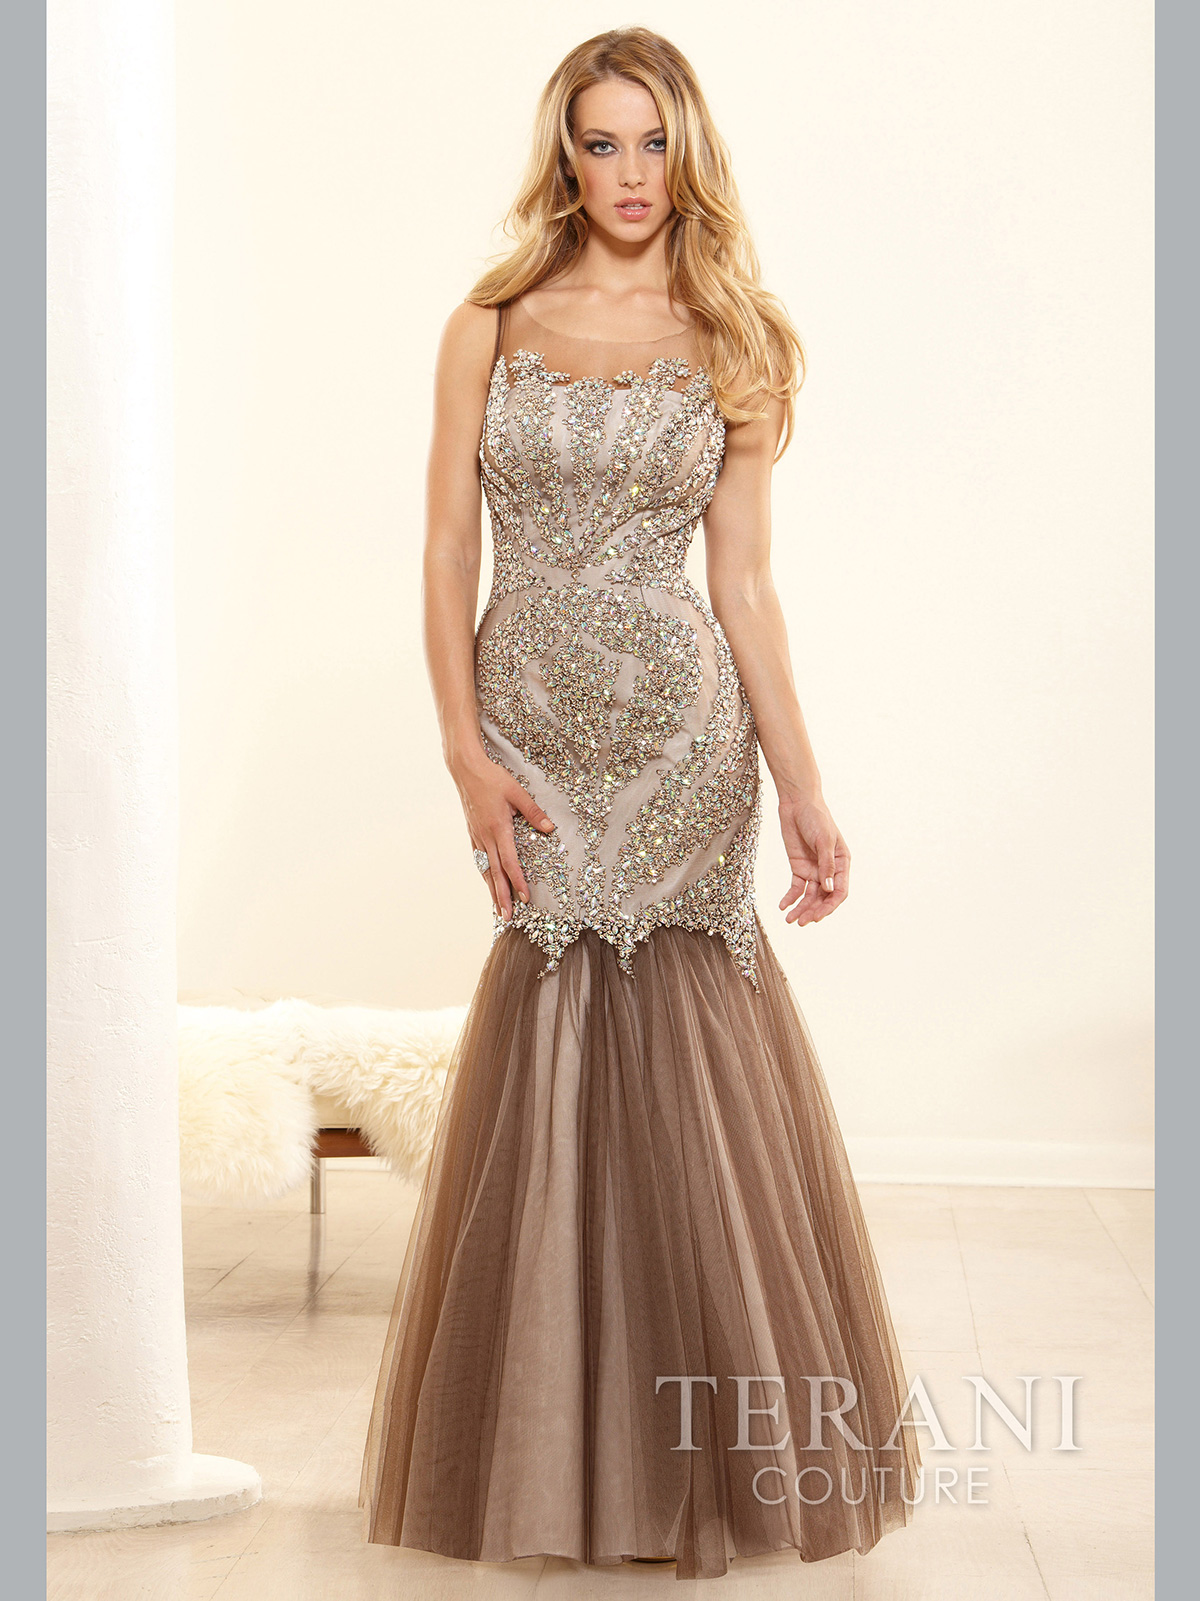 Terani couture prom dresses long dresses online for A couture dress